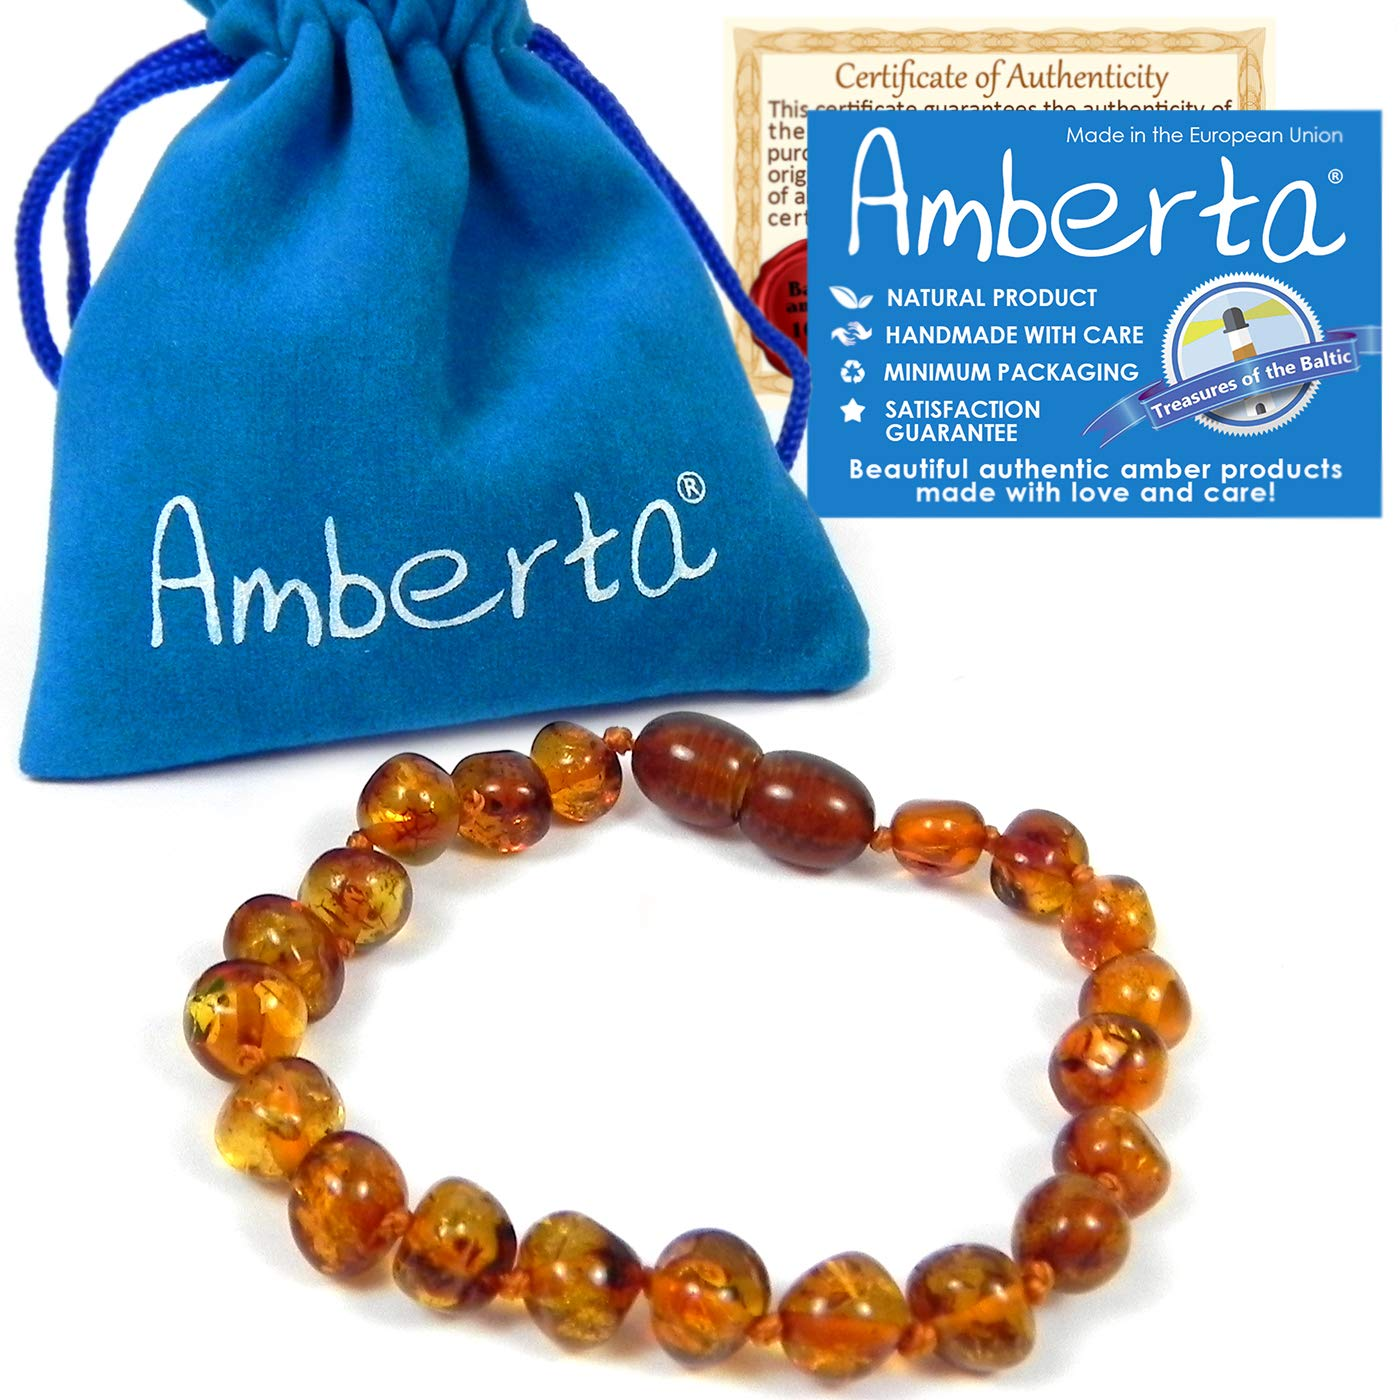 Amber Teething Anklet or Bracelet for Babies Amberta - 5.5 OR 6.3 inch, Anti Inflammatory, Teething Discomfort & Drooling Relief, Natural Soothing Effect - 100% Pure Amber, Handmade by Amberta